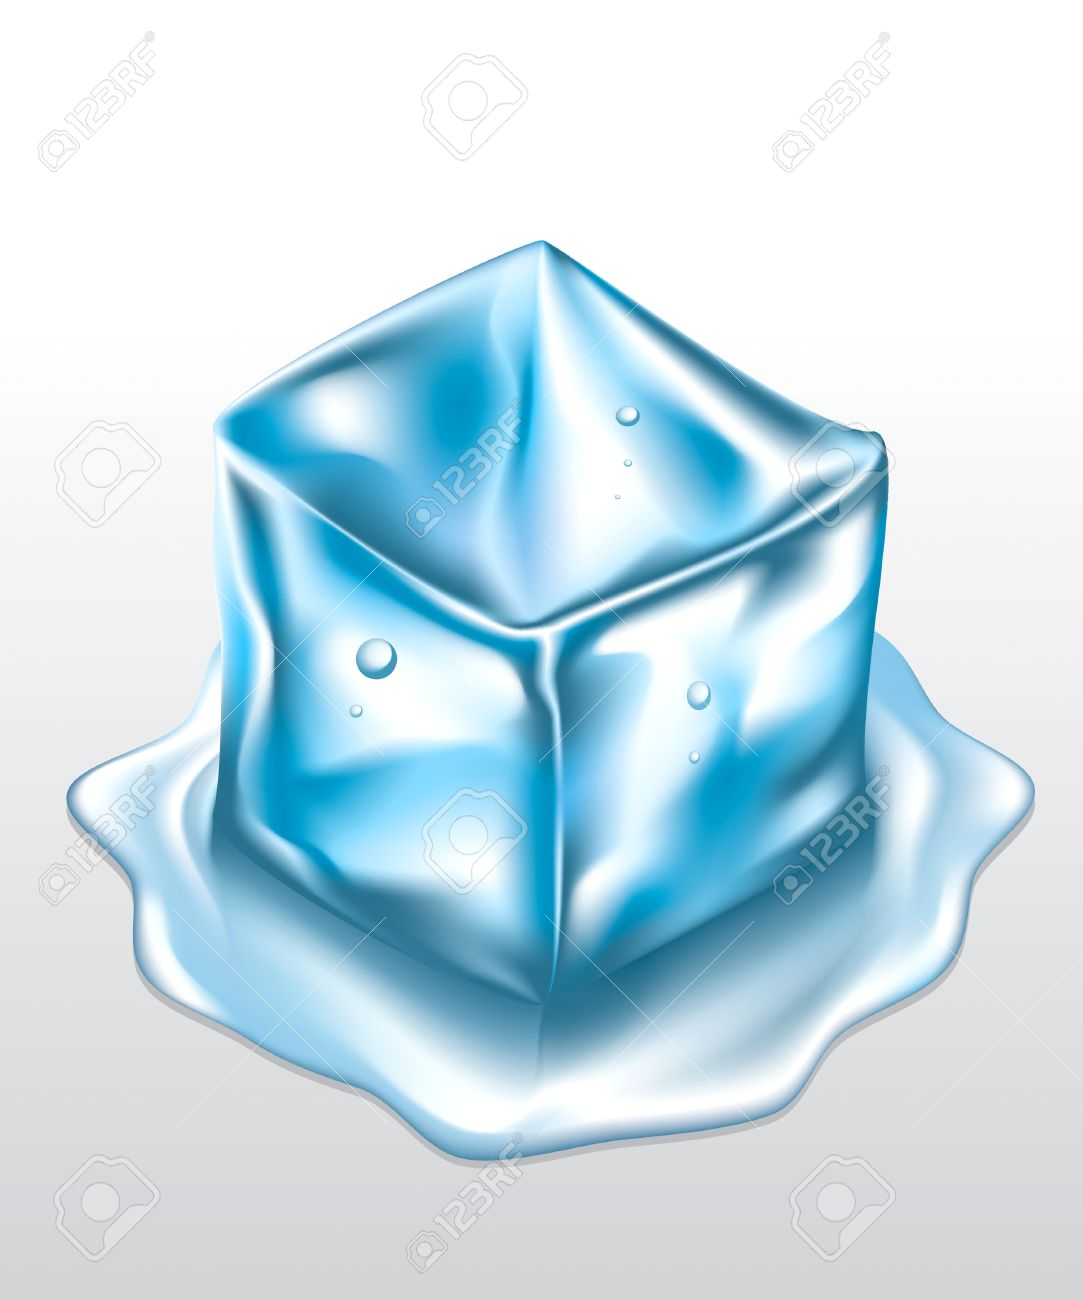 Ice Cube Mesh Drawing Royalty Free Cliparts Vectors And Stock